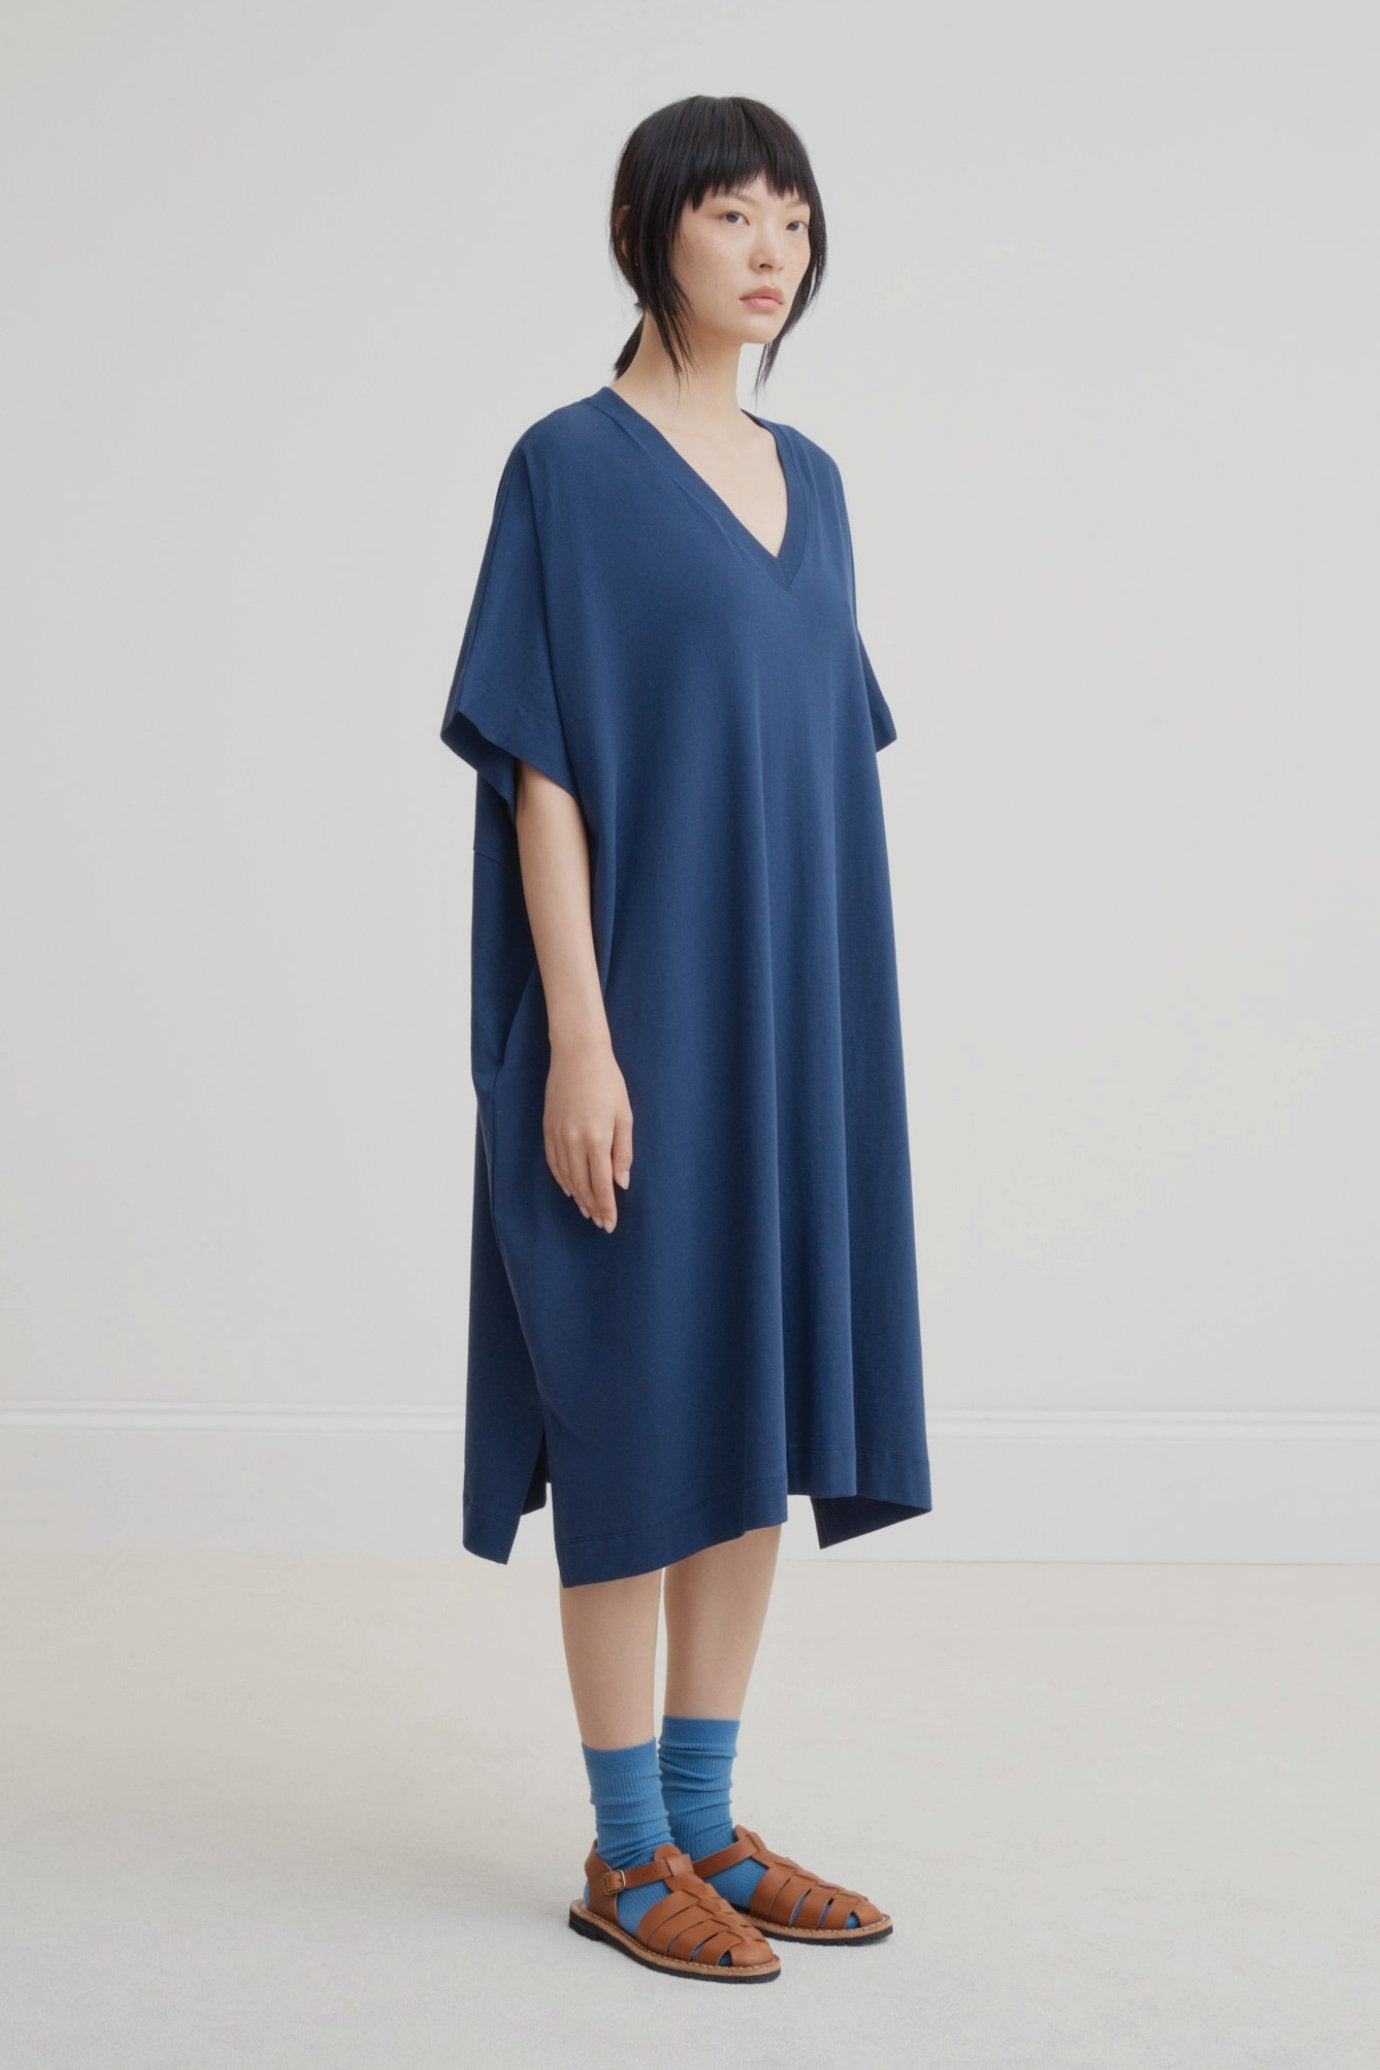 V-NECK DRESS - NAVY